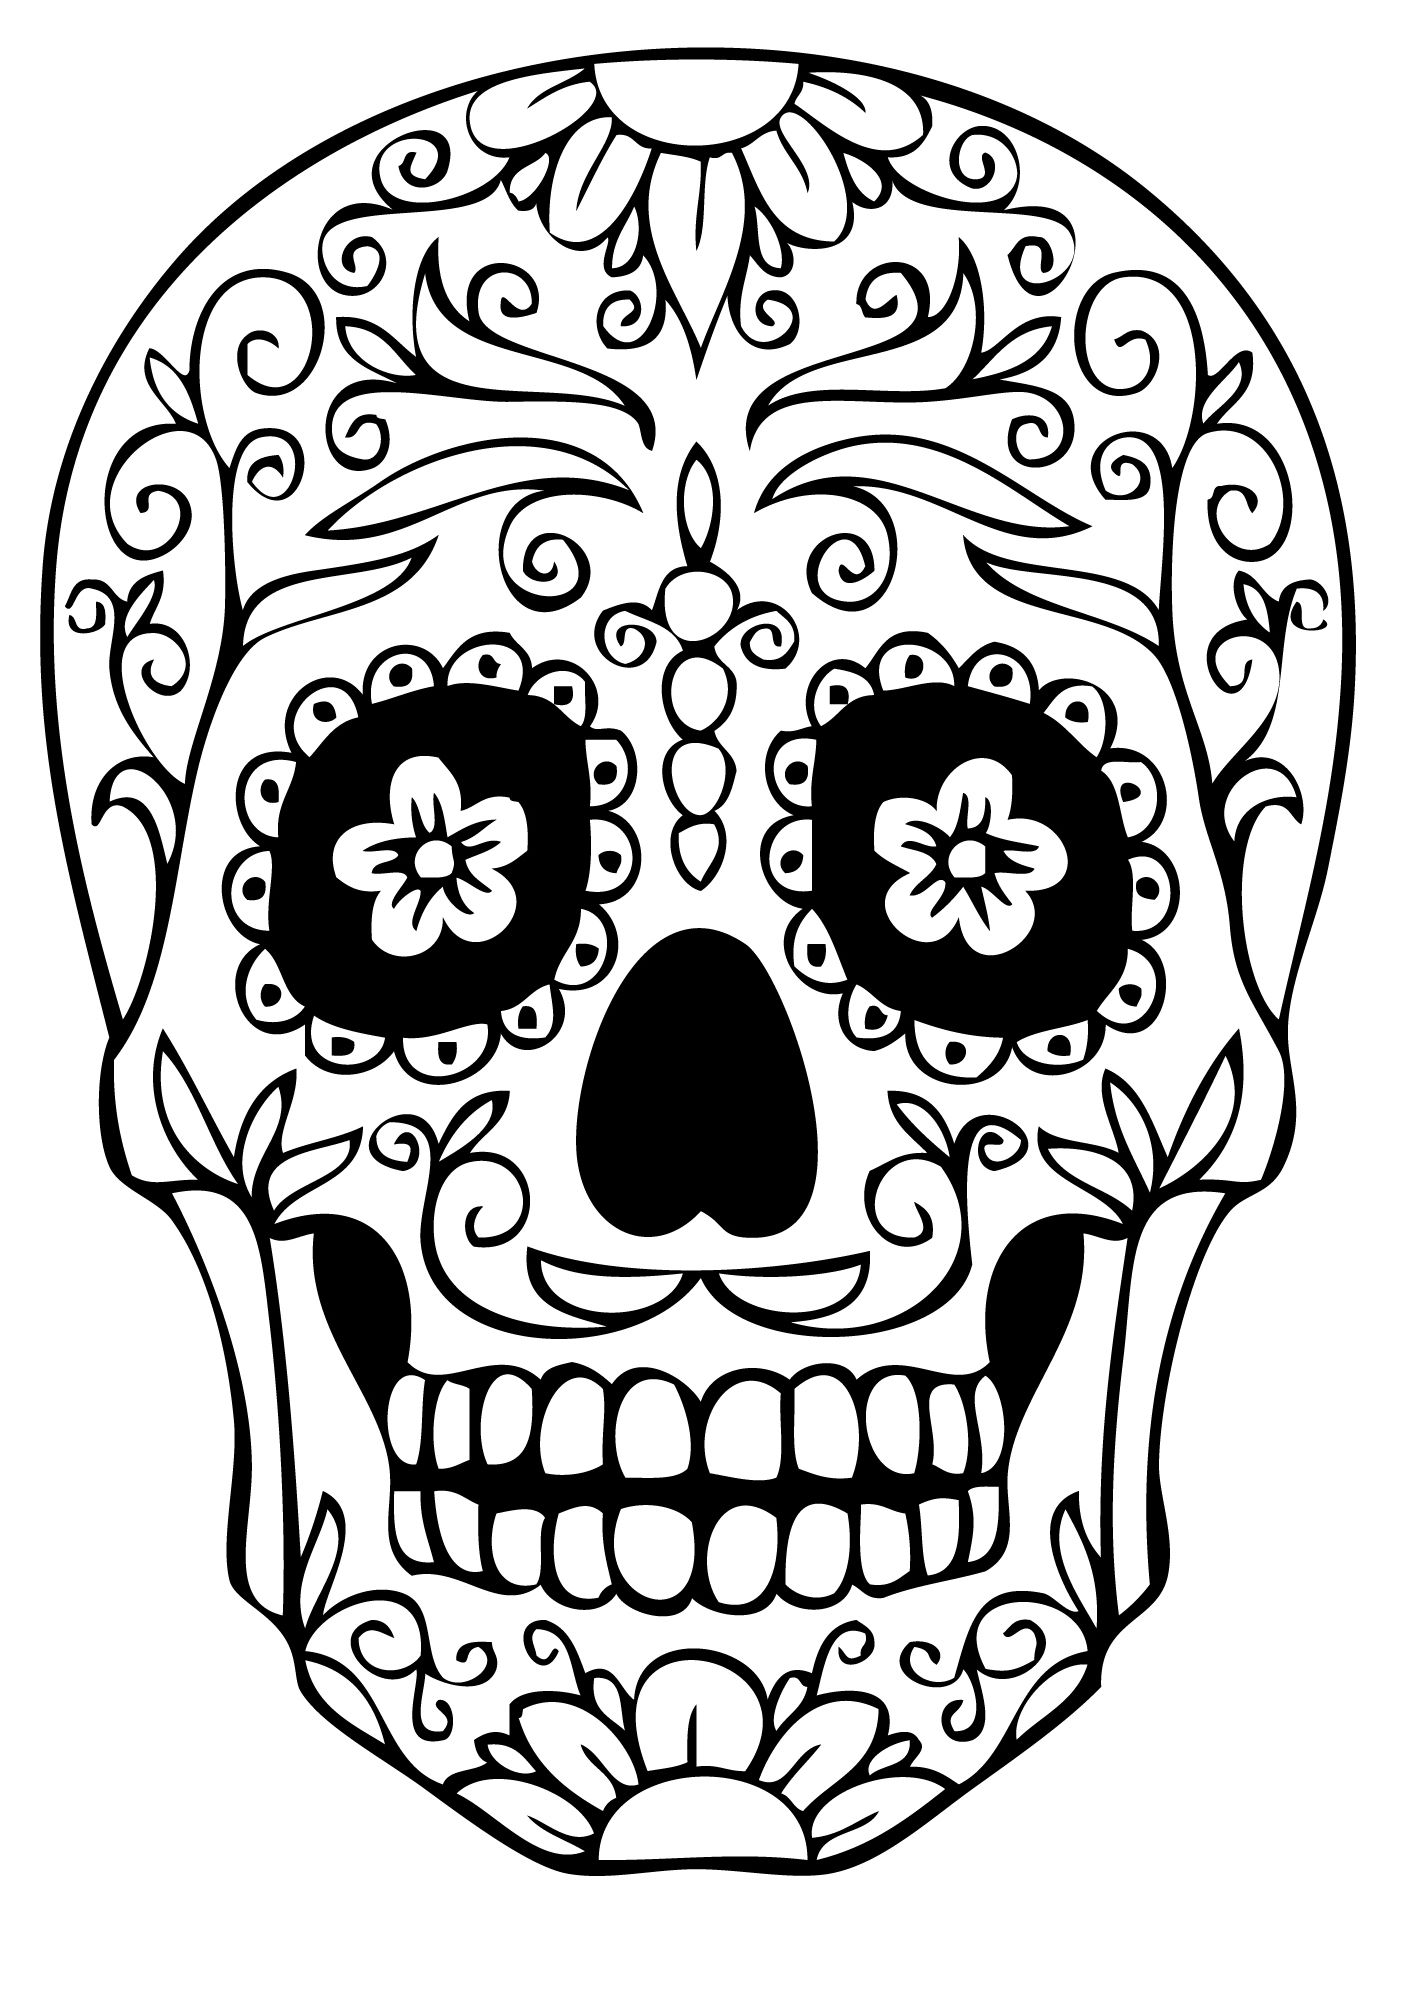 candy skull coloring pages extra large sugar skull makeup pinterest coloring candy pages skull